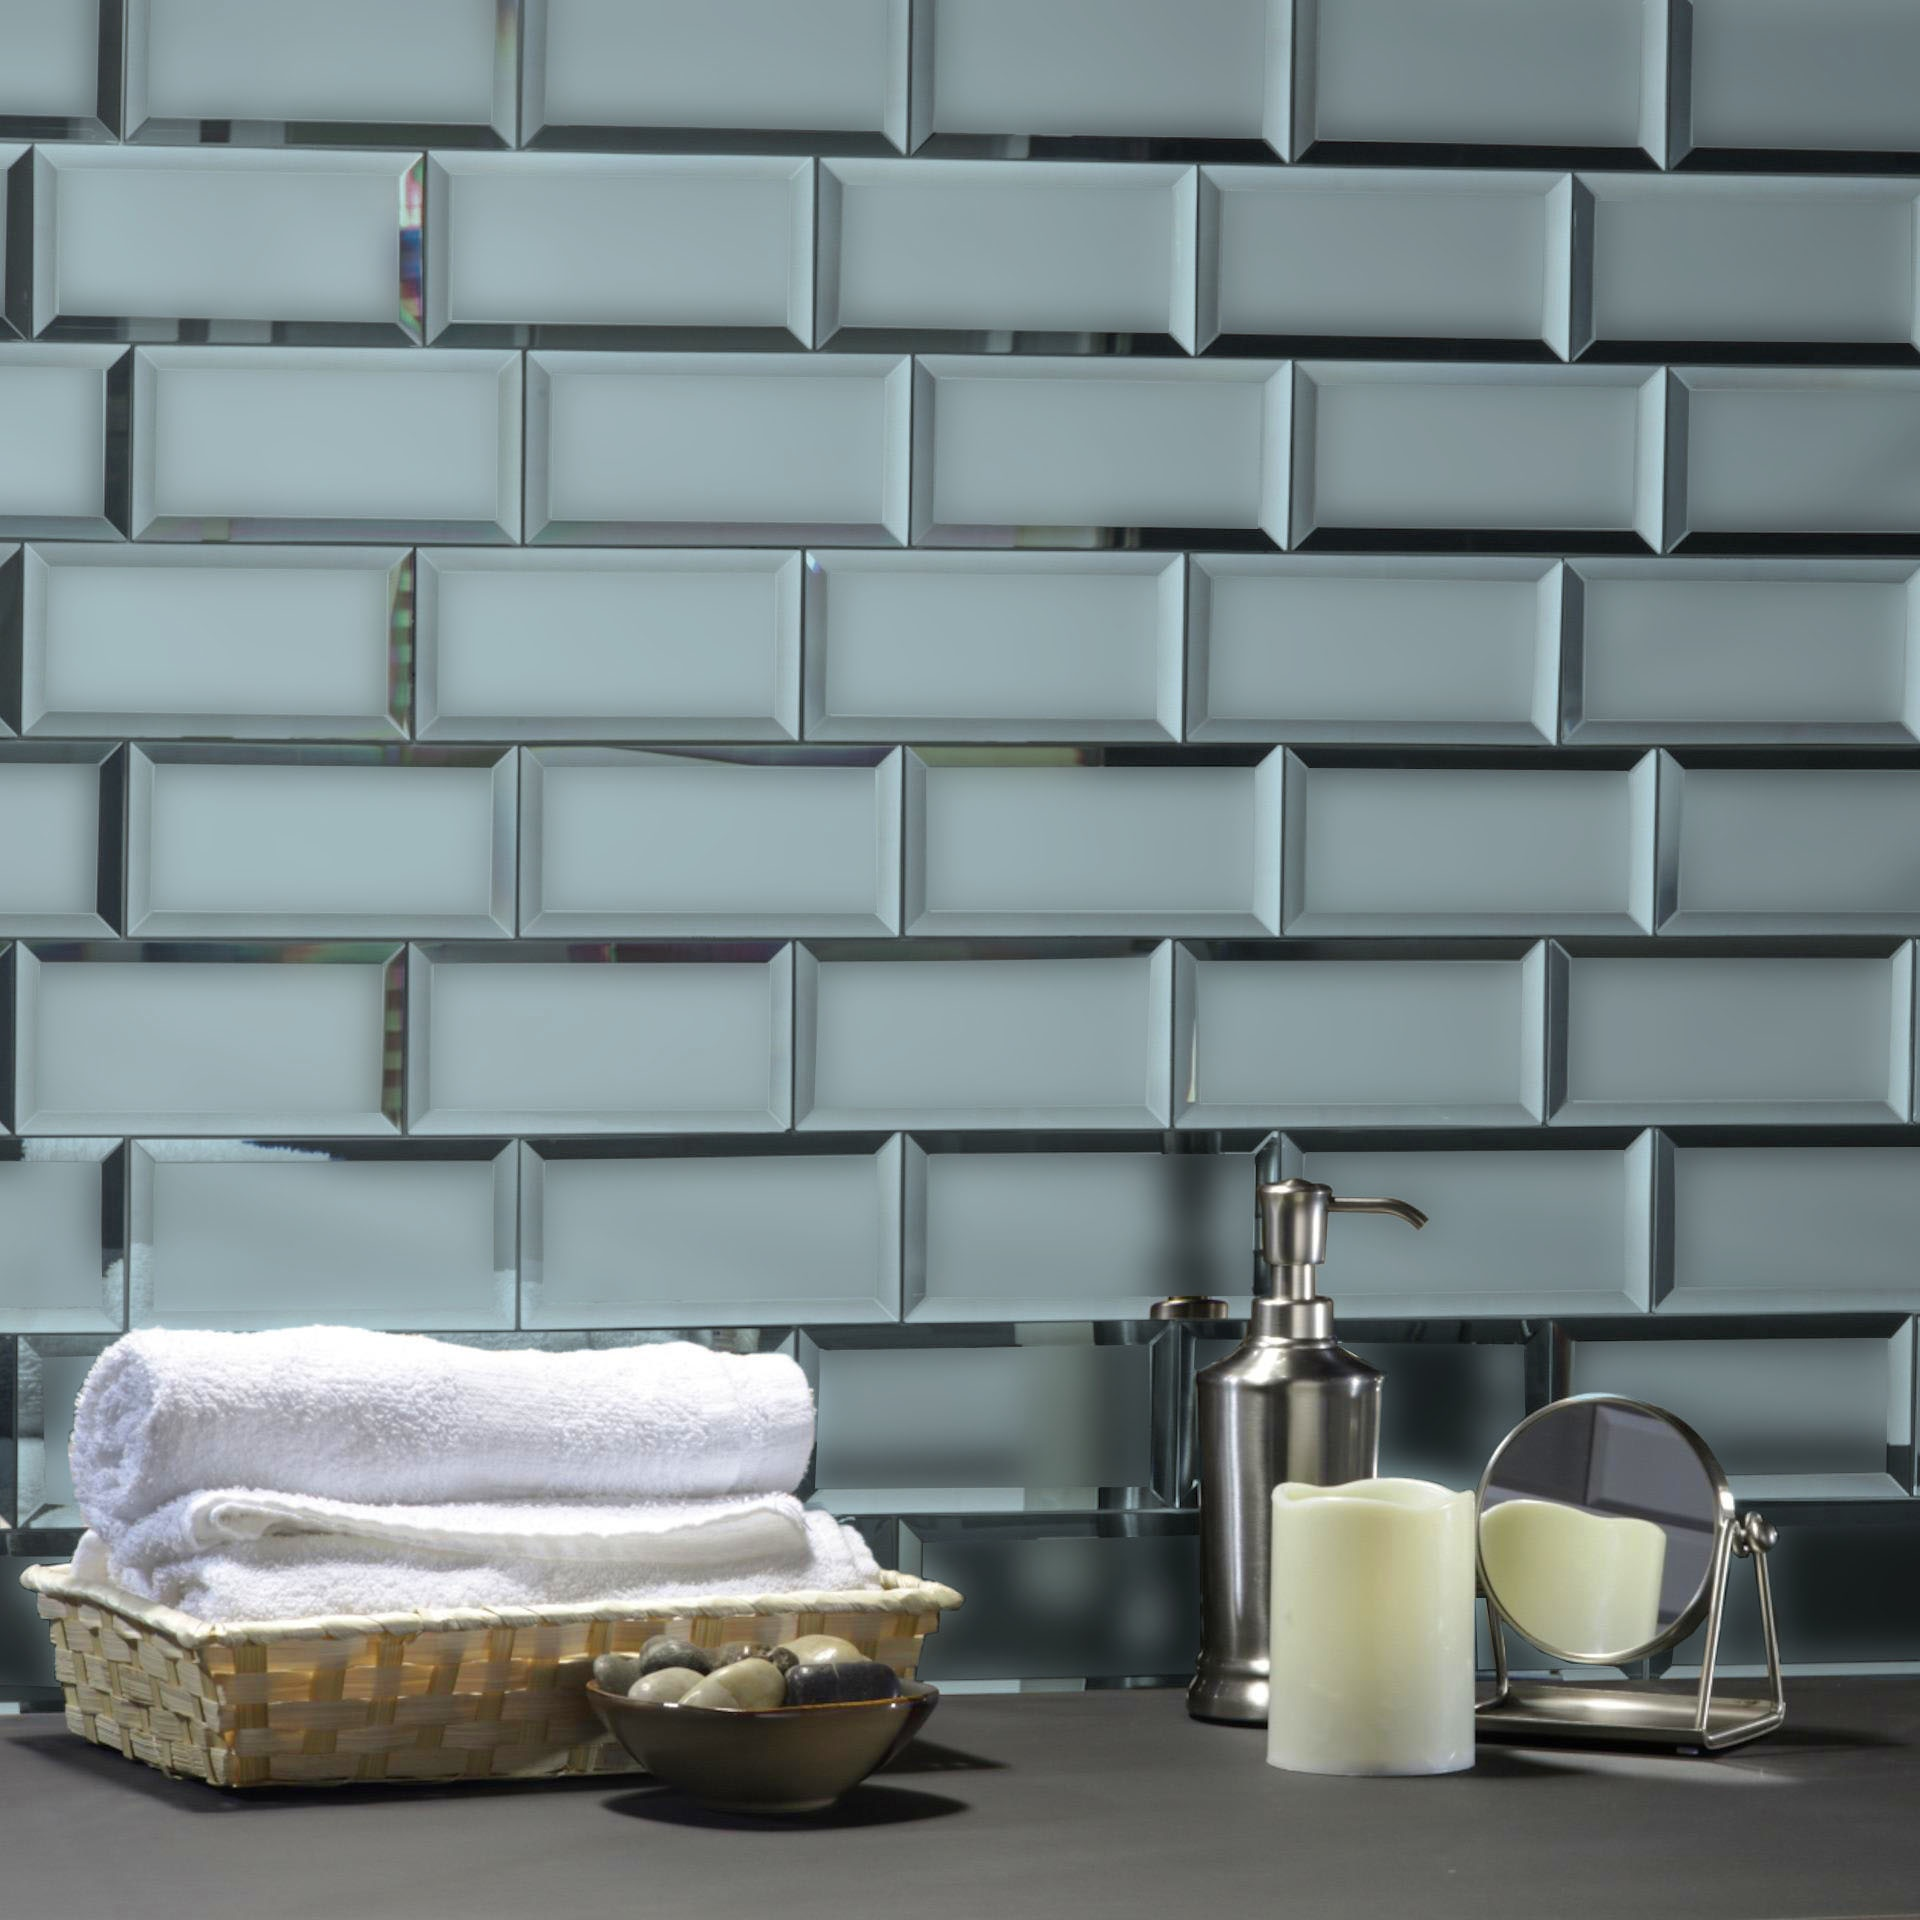 "Reflections 3"" x 6"" Matte Gray Mirror Subway Backsplash Wall Tile"